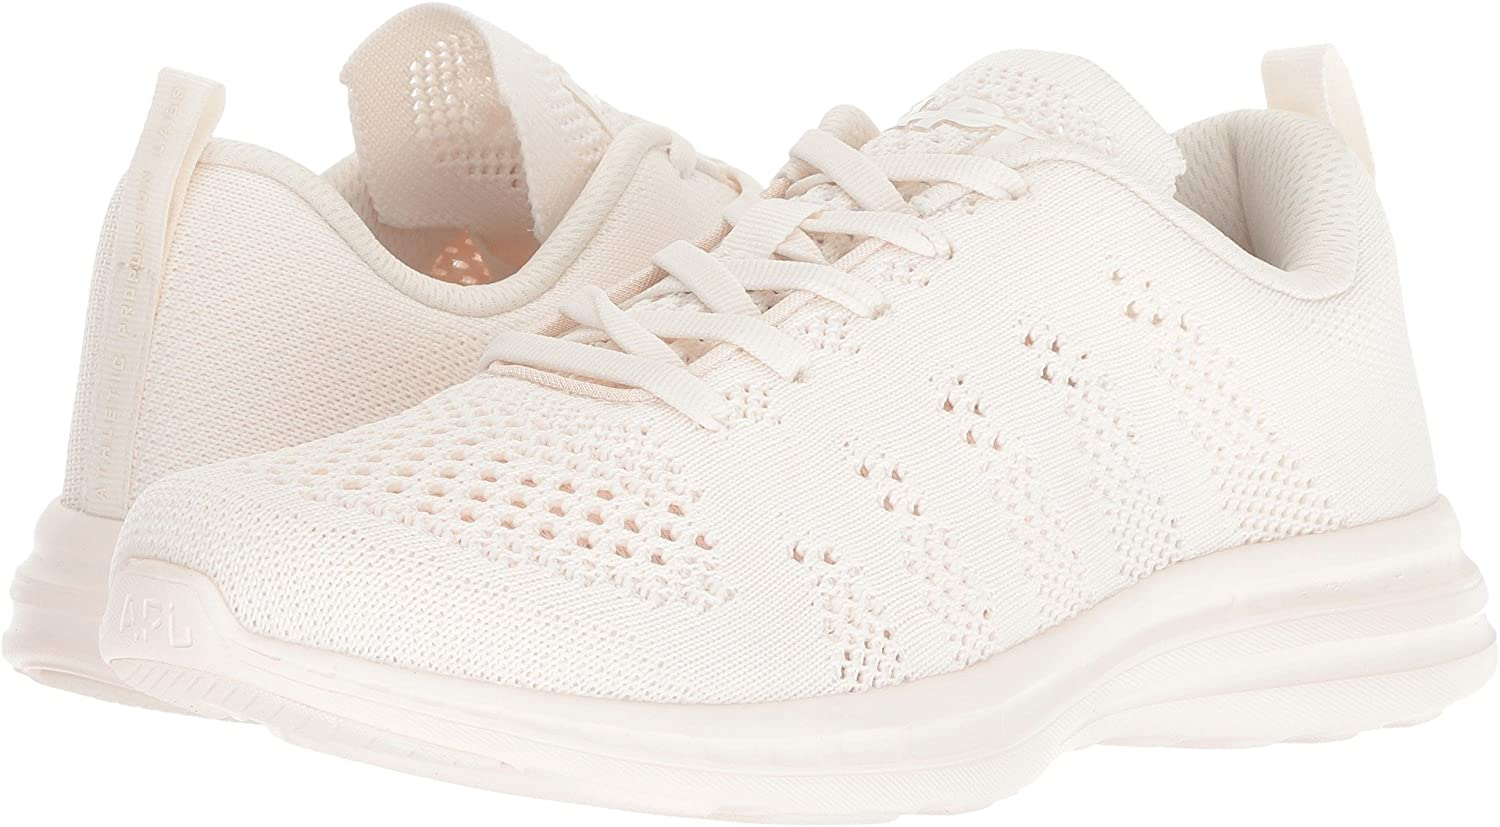 APL: Athletic Propulsion Labs Women's Techloom Pro Sneakers B07BH3LQ5C 7.5 M US|Sea Salt